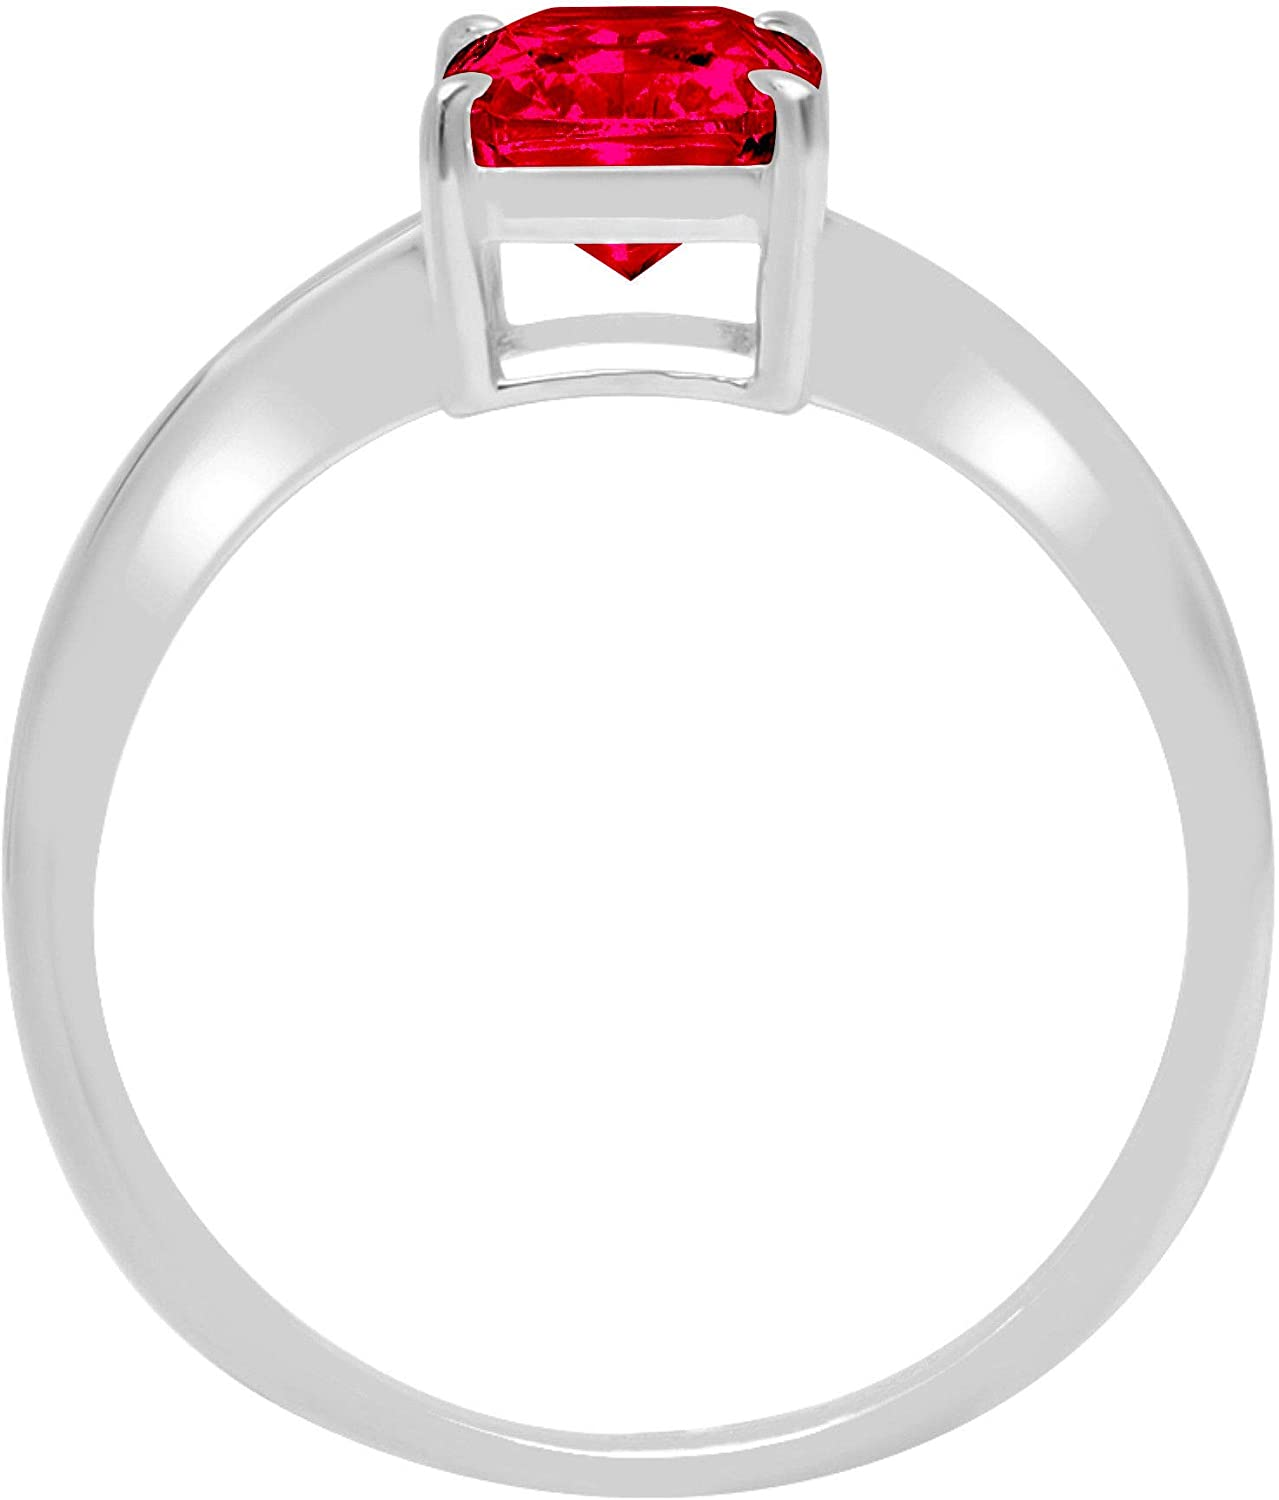 1.05 ct Brilliant Radiant Cut Solitaire Flawless Genuine Pink Tourmaline 4-Prong Stunning Classic Statement Designer Ring Solid 14k White Gold for Women